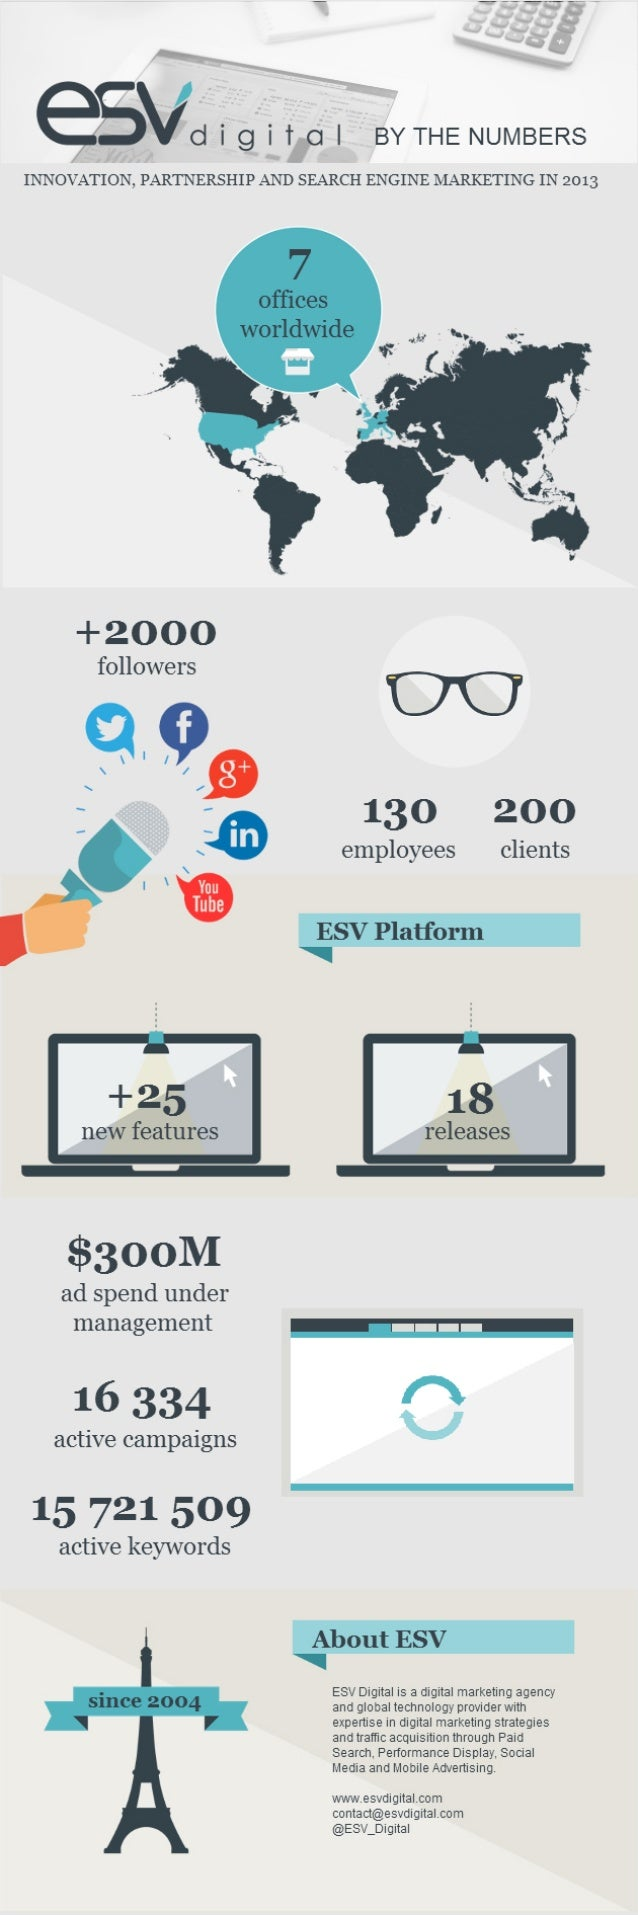 ESV by the Numbers 2013